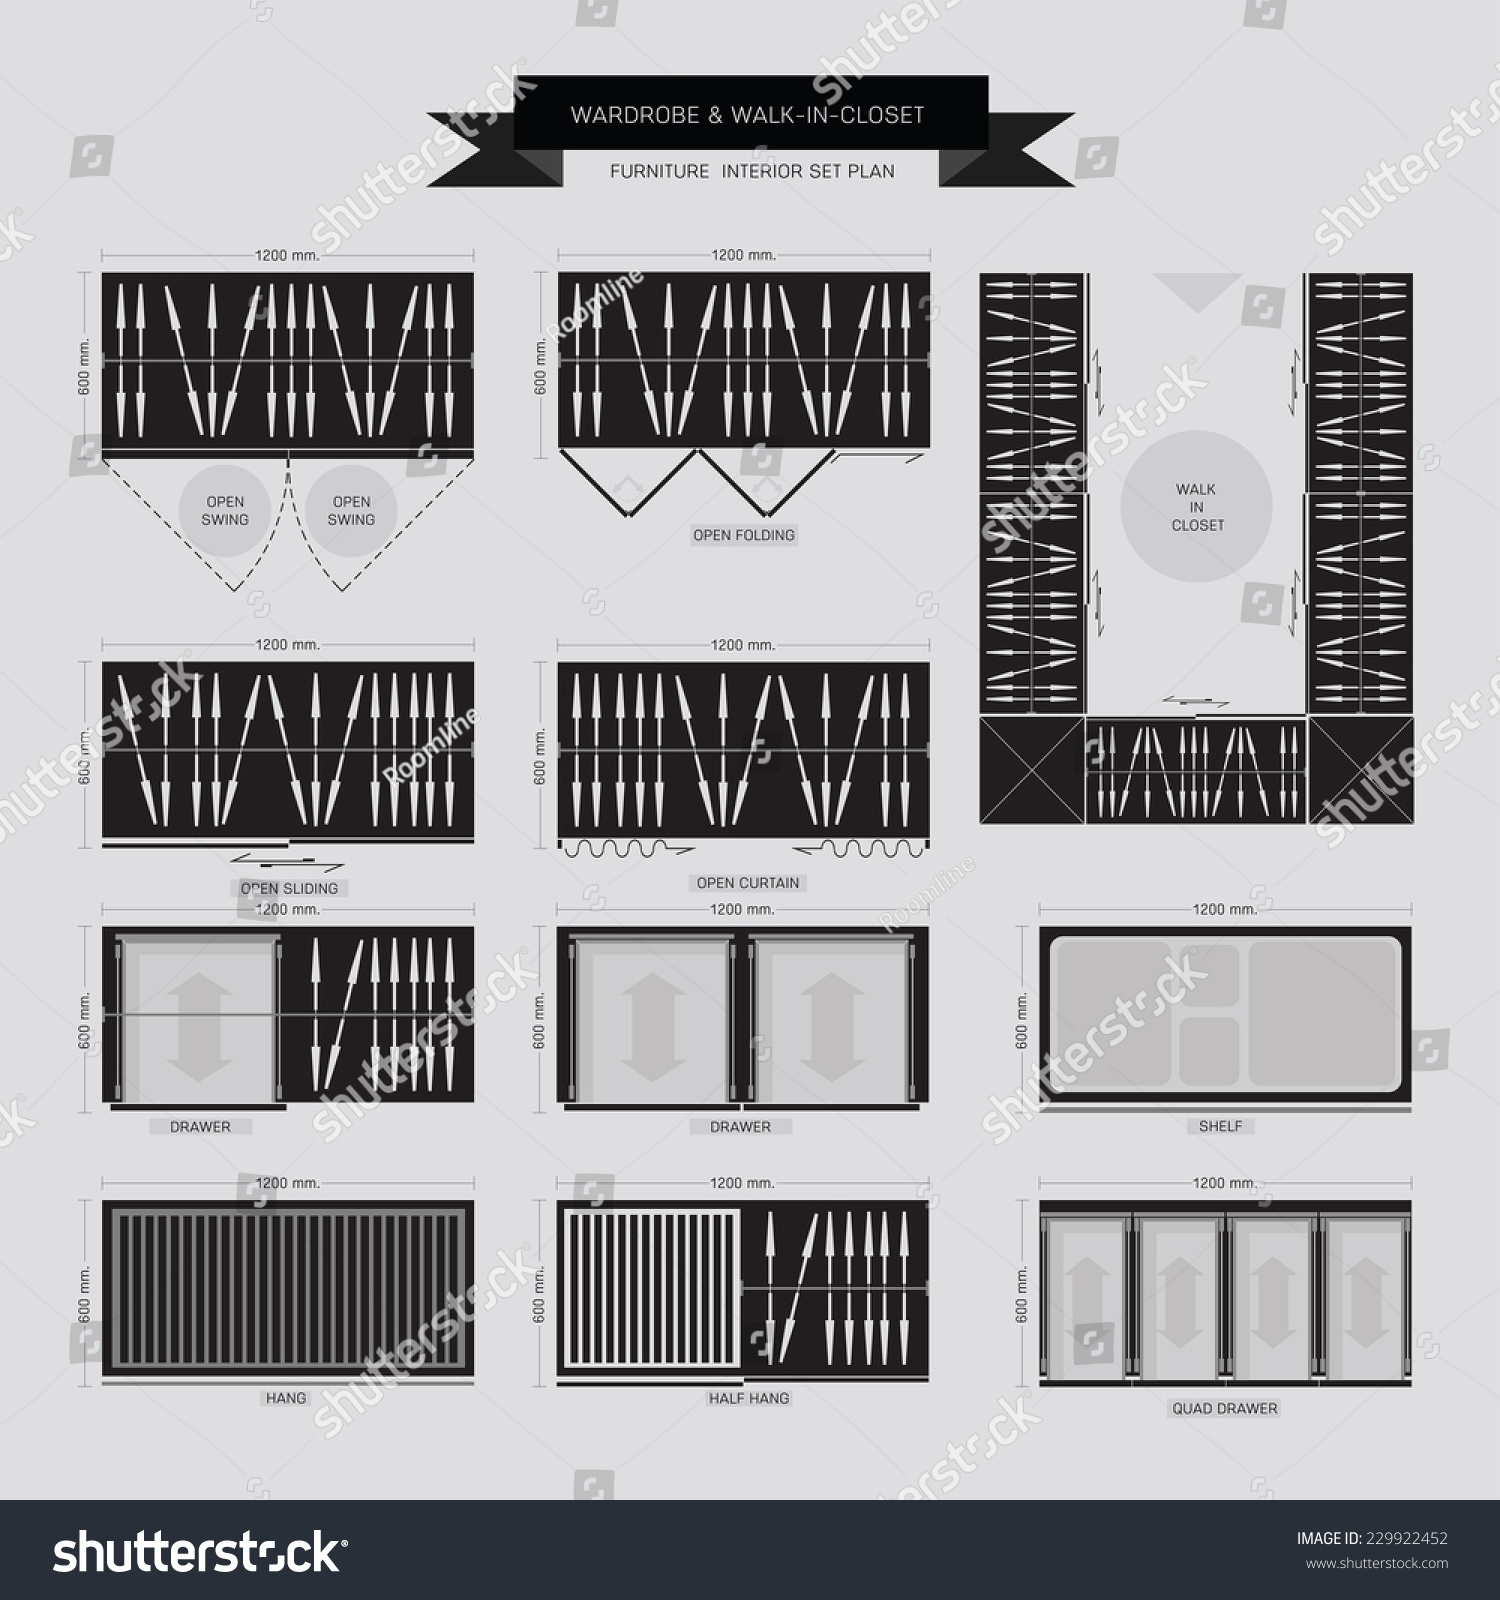 Wardrobe And Walk In Closet Furniture Icon Top View For Interior Plan Stock Vector Illustration